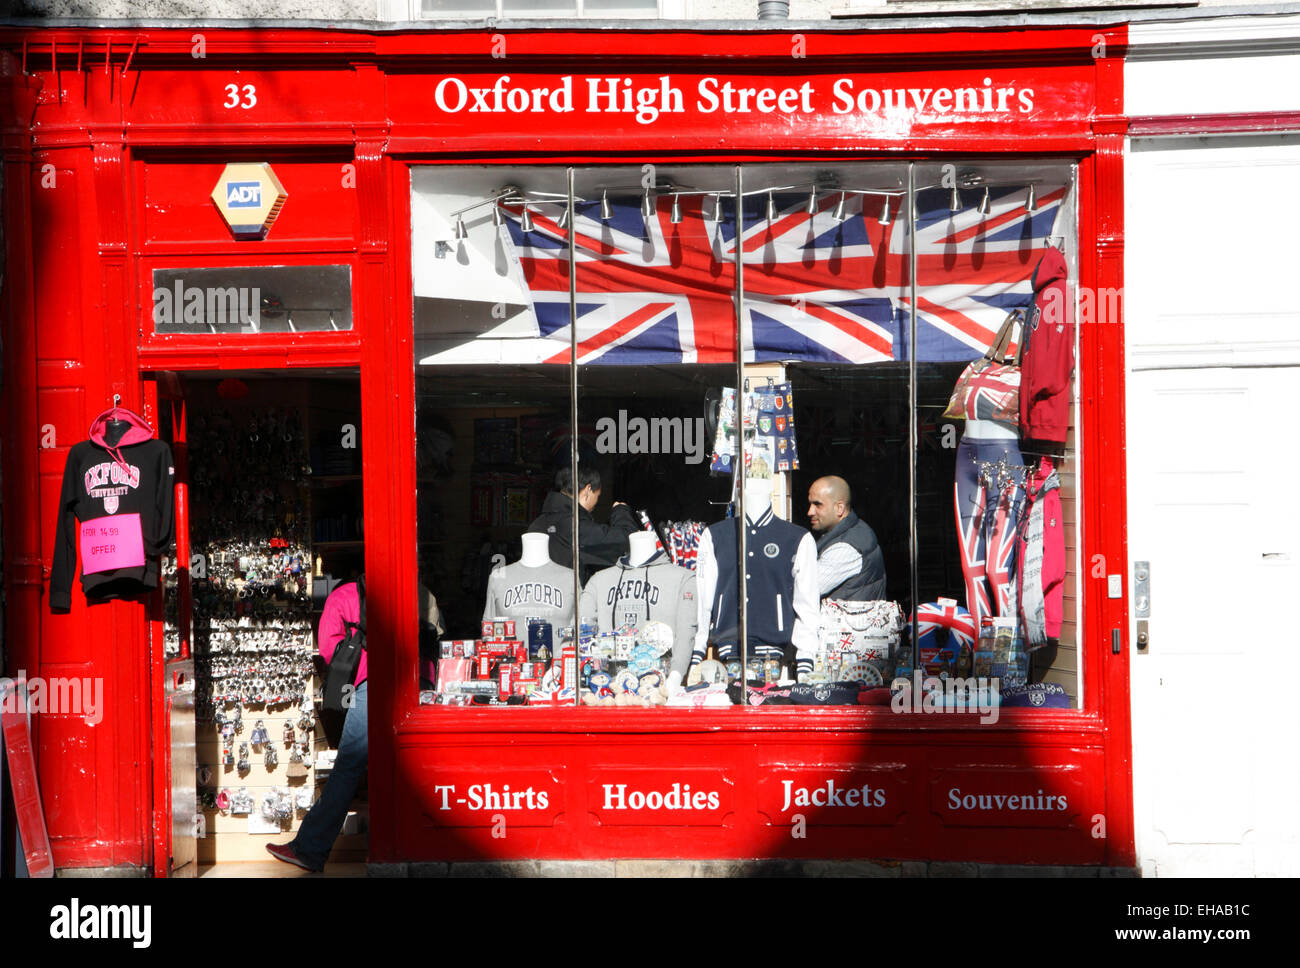 Oxford High Street Souvenirs shop in Oxford, England - Stock Image